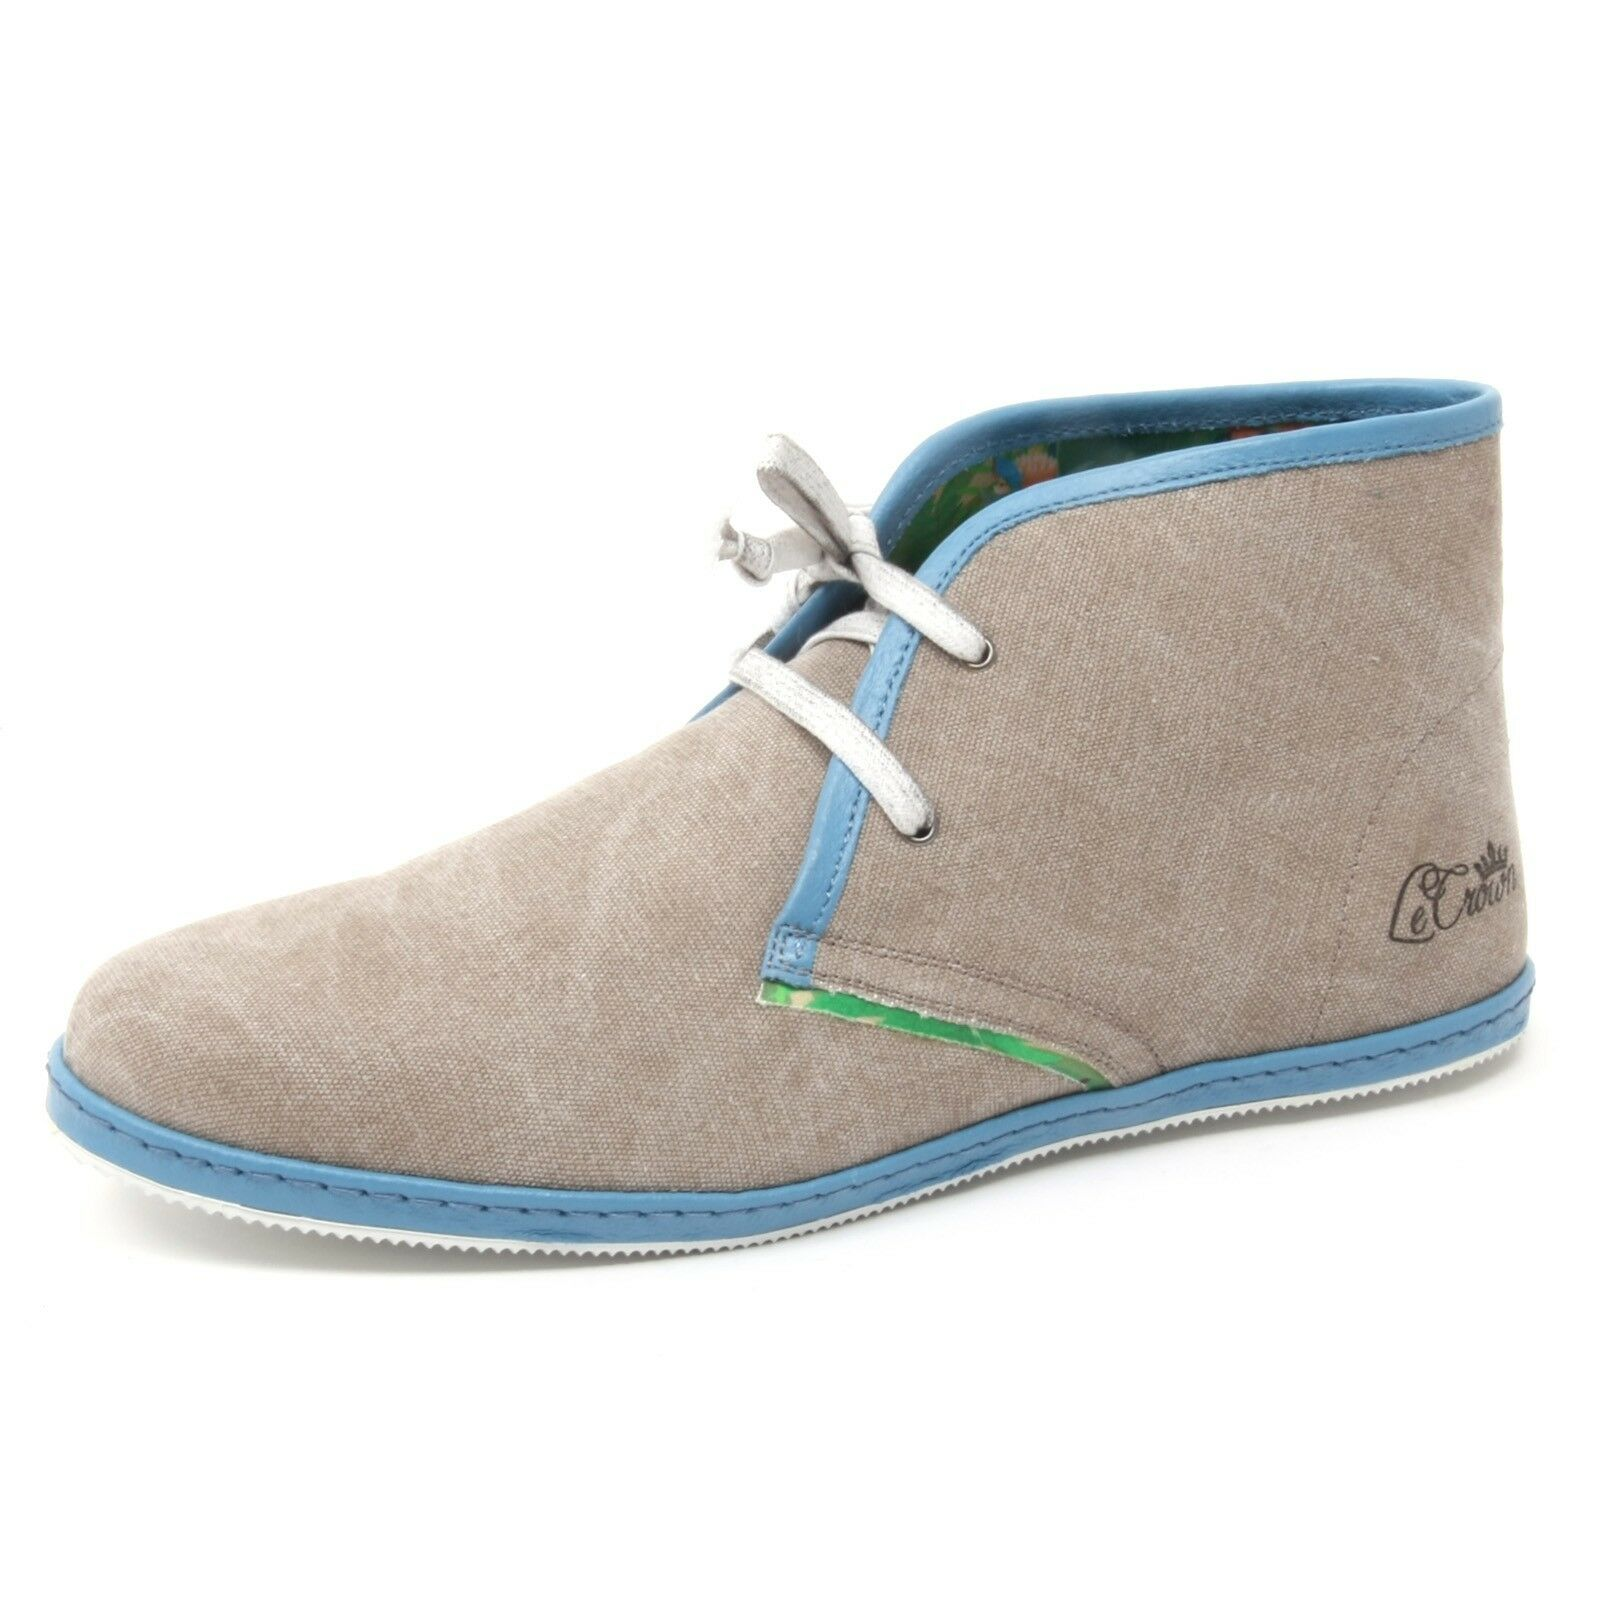 B4004 polacchino uomo LECROWN MILANO DESERT BOOT scarpa beige canvas shoe man